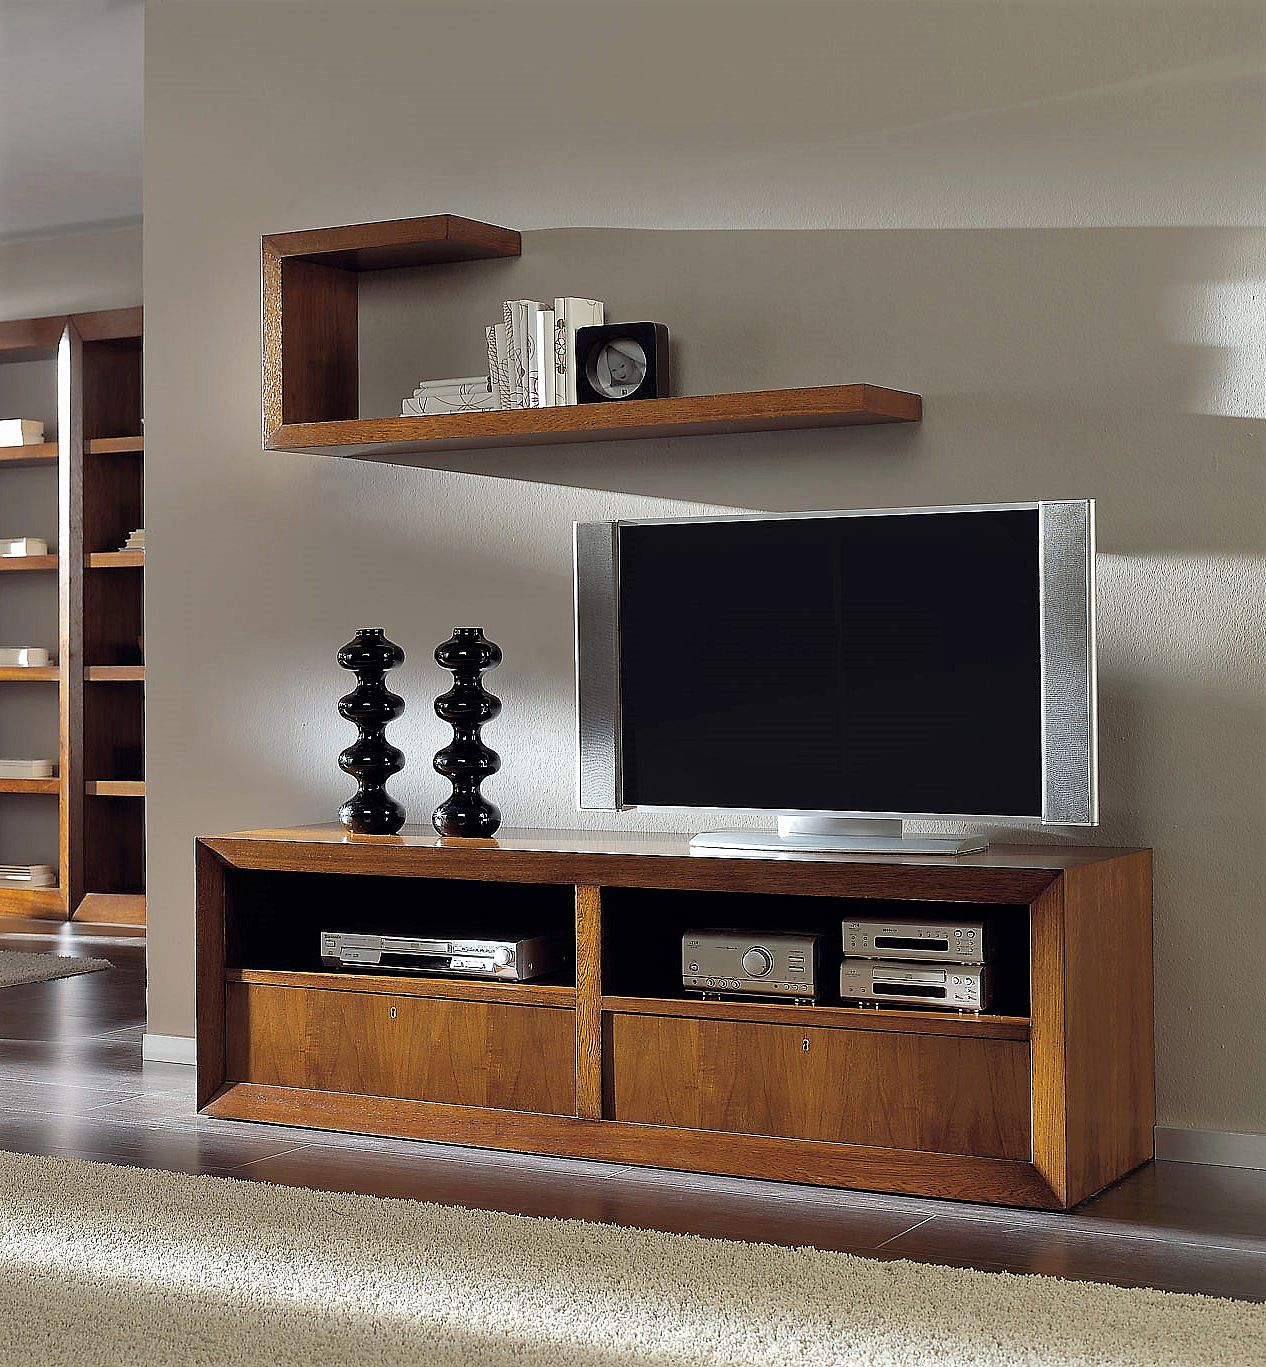 Mueble tv en nogal con cajones y ruedas alta decoraci n for Muebles para tv con ruedas